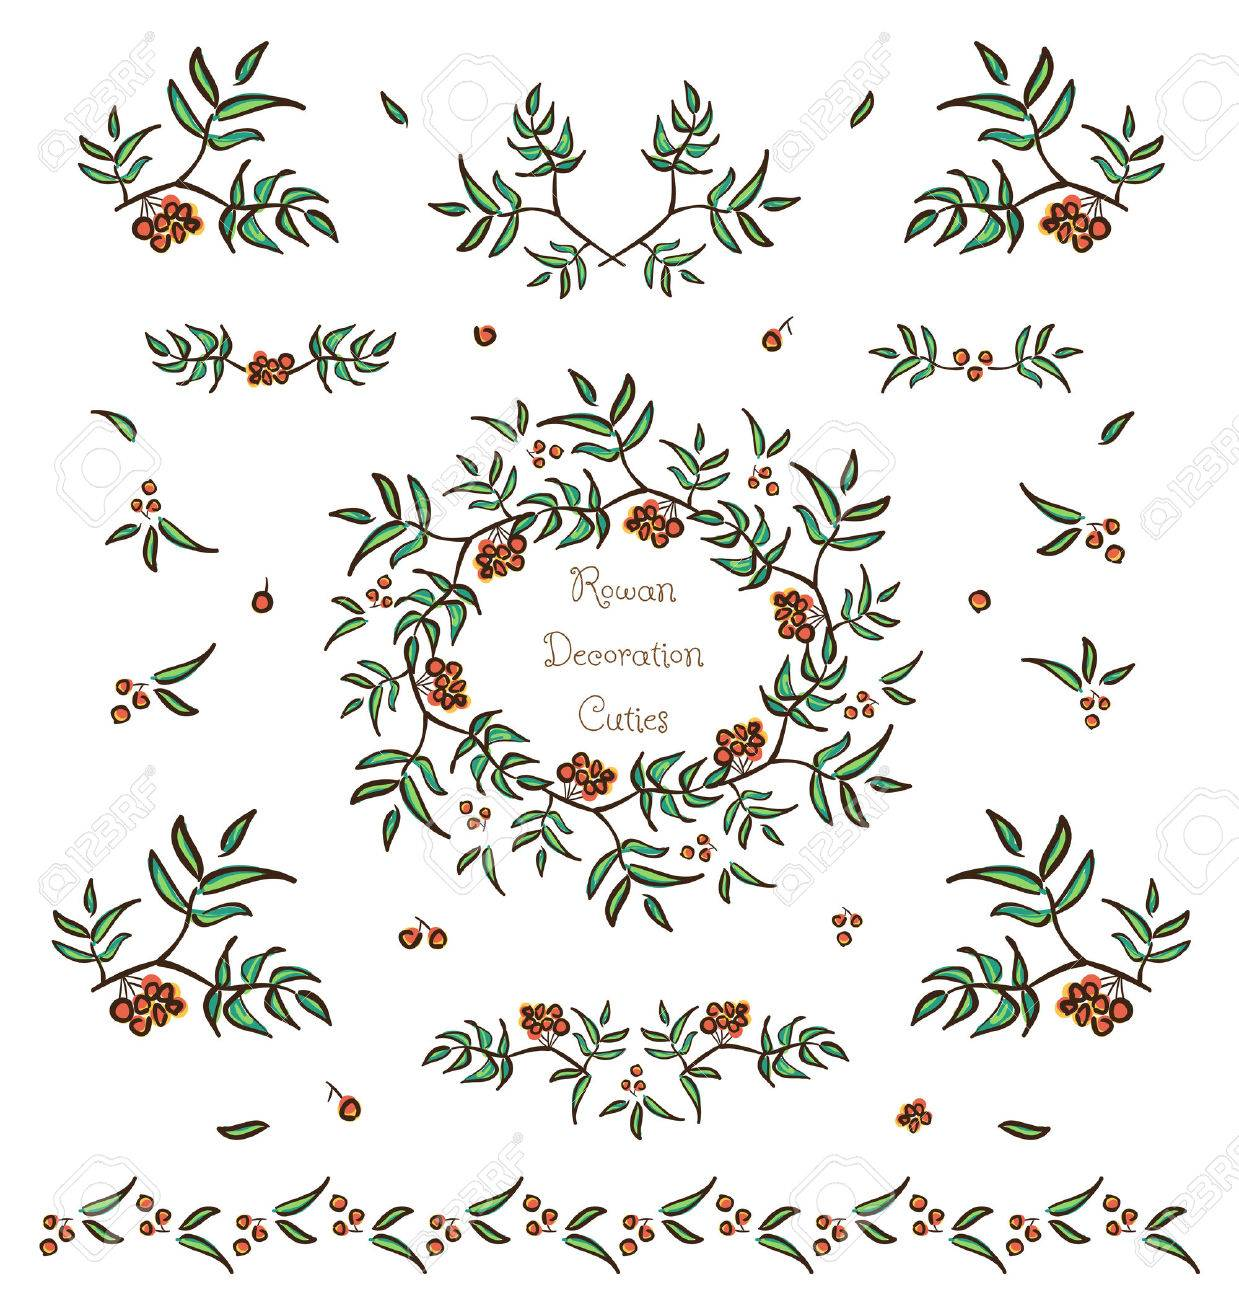 Vector set of cute tree twigs decorative elements, borders and vignettes made of rowan tree berries and leaves for cards and design - 35706064